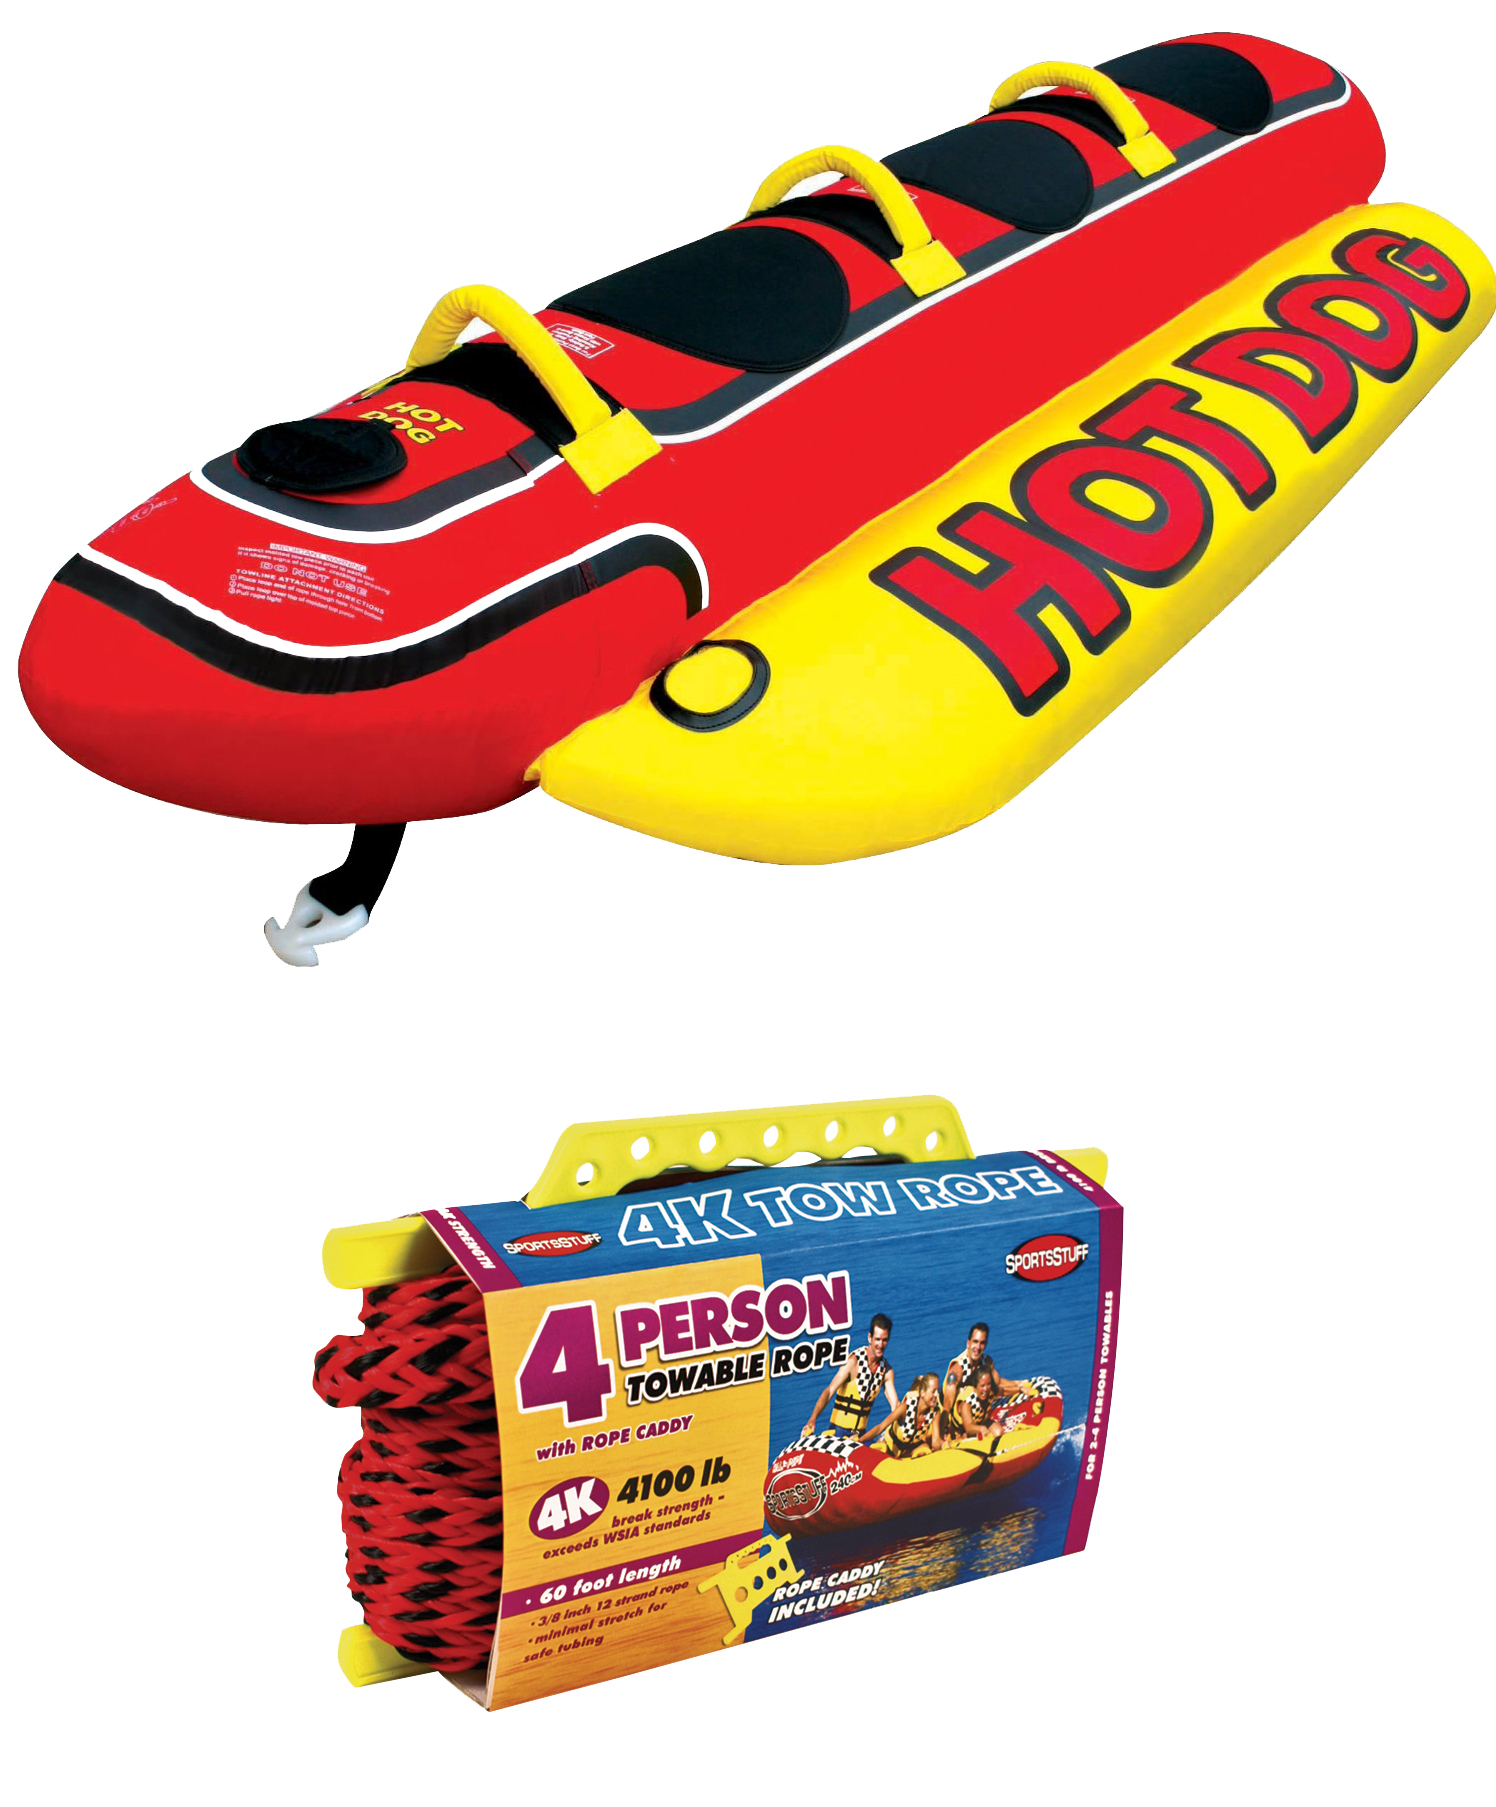 AIRHEAD HD-3 Hot Dog Triple Rider Towable Inflatable 3-Person Tube w  Tow Rope by Kwik Tek